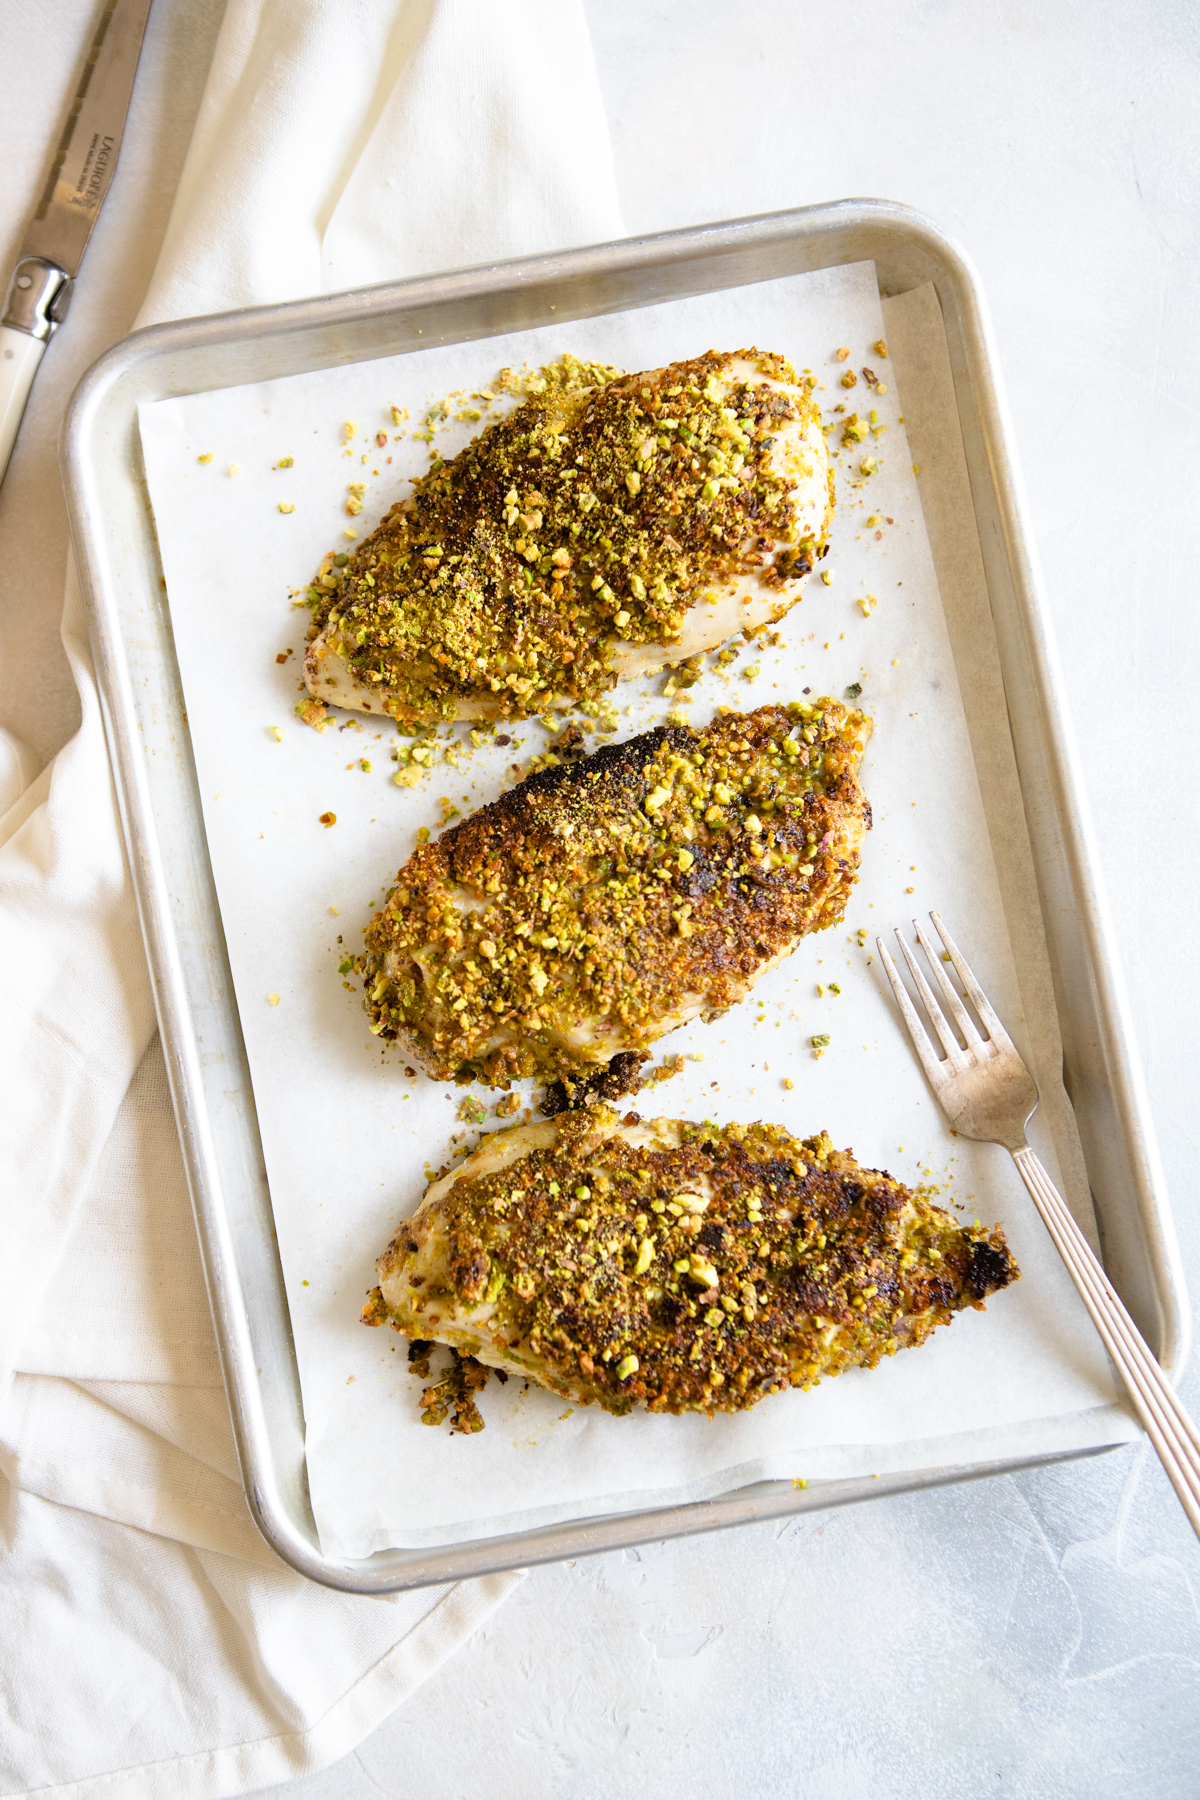 3 baked chicken breasts with pistachio topping placed on a baking sheet